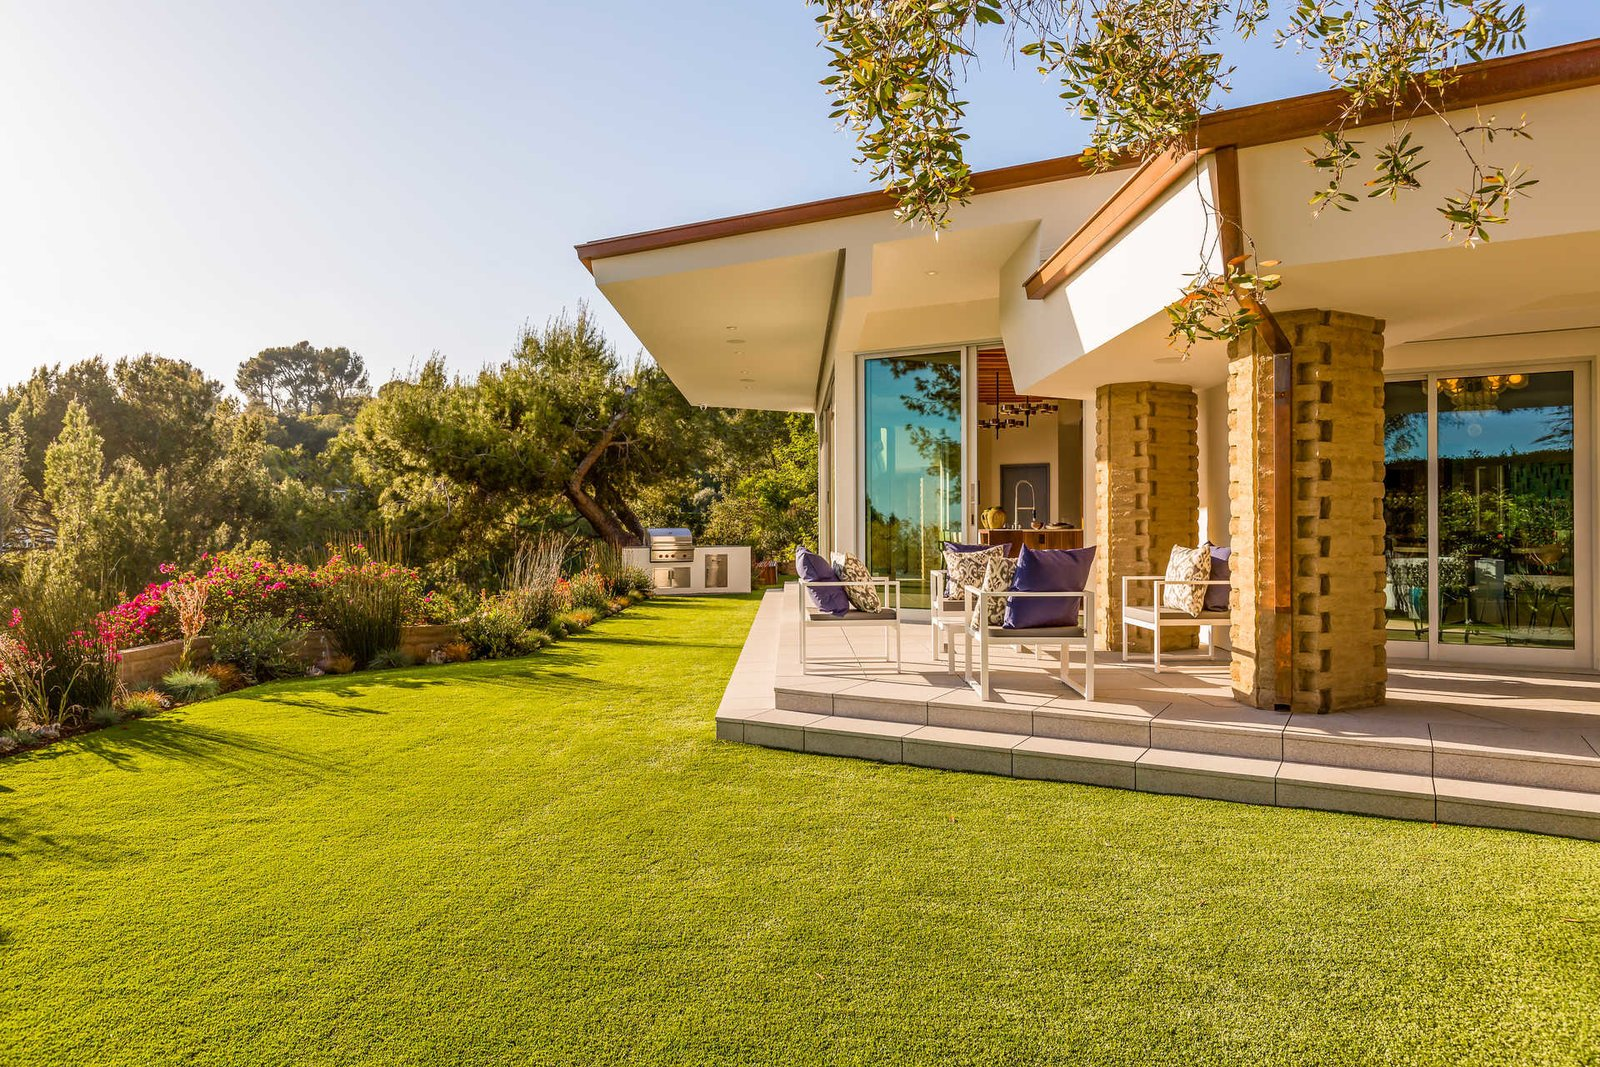 The Doors Guitarist Robby Krieger's Restored L.A. Midcentury Asks $14M